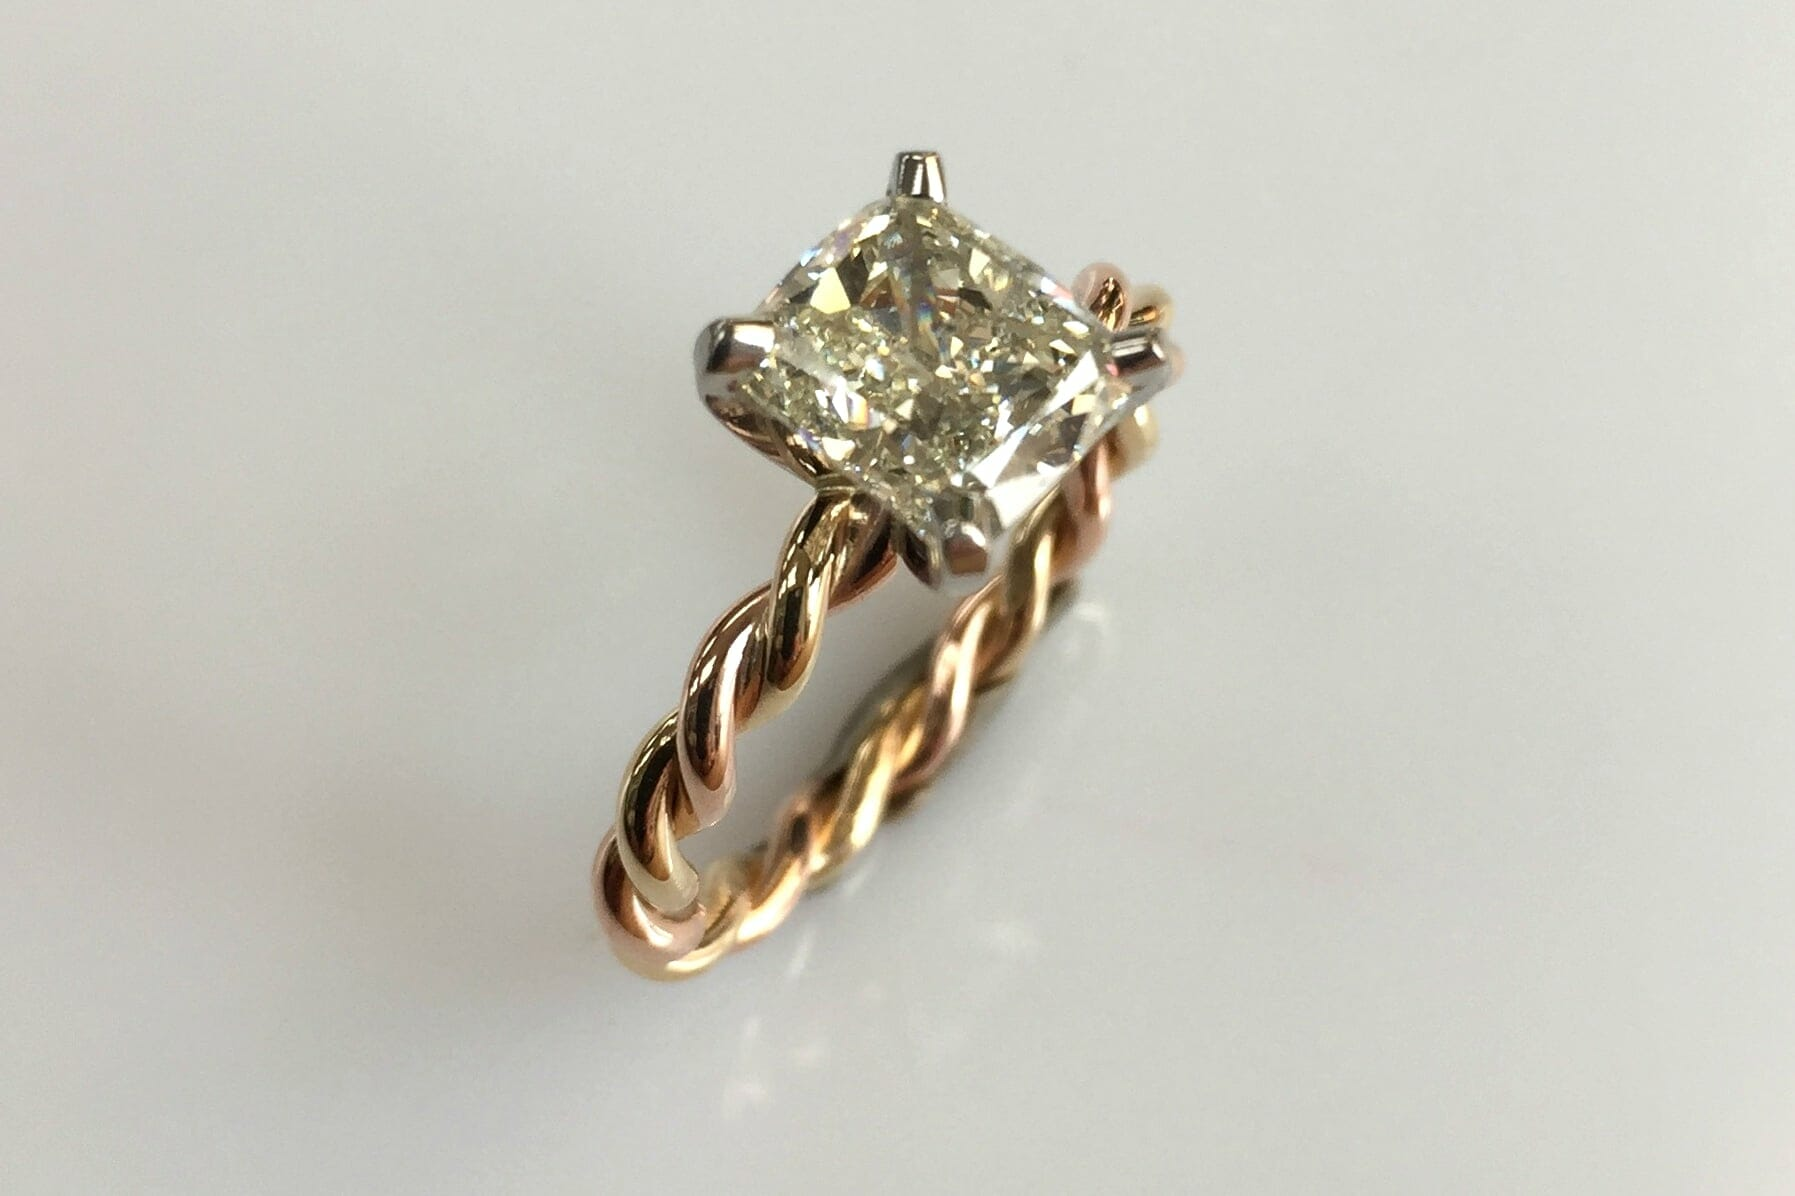 gallery designed ring custom engagement rings jewelry oregon yellow gold diamond boston sunstone eva